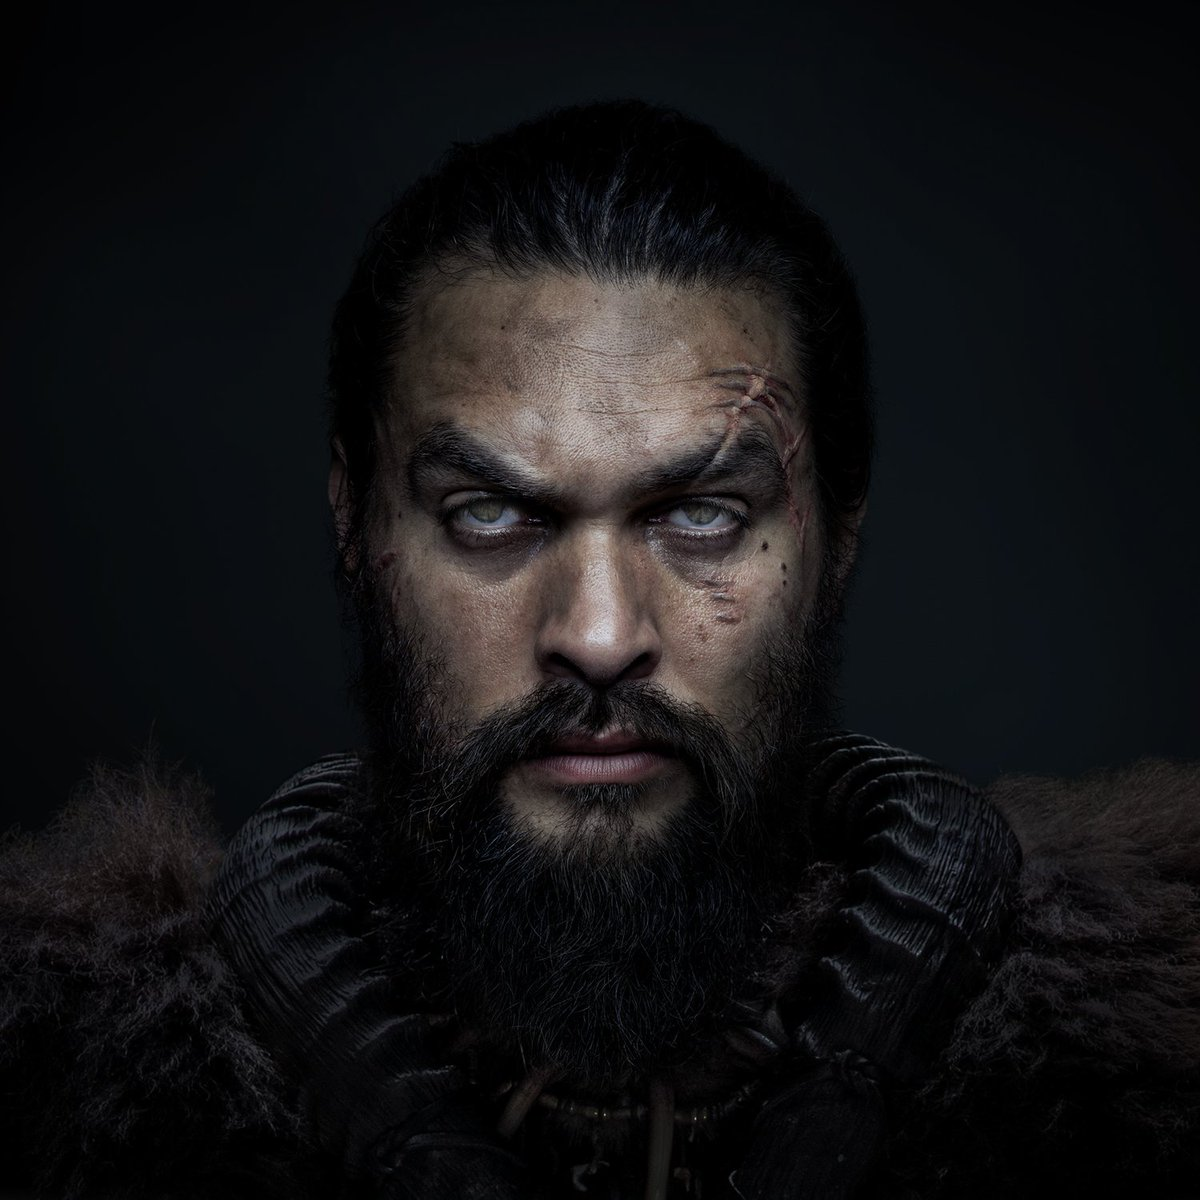 Jason Momoa stars in a world without sight in first trailer for Apple TV+'s 'See'(via @SeeOfficial)